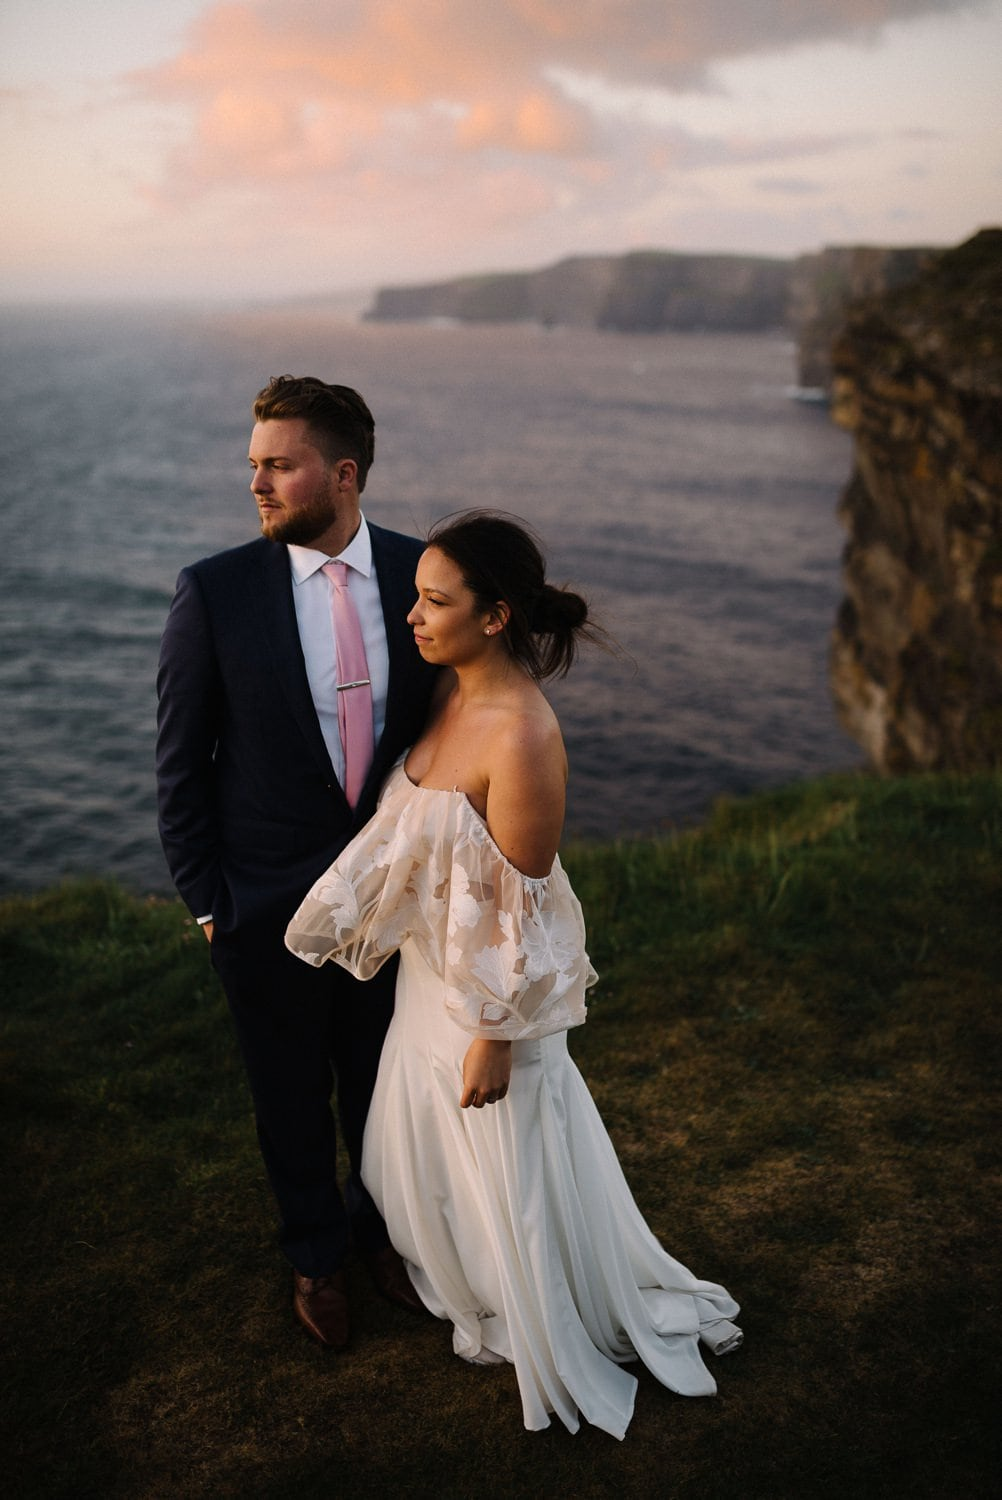 Elopement on the Cliffs of Moher Ireland wedding photographer